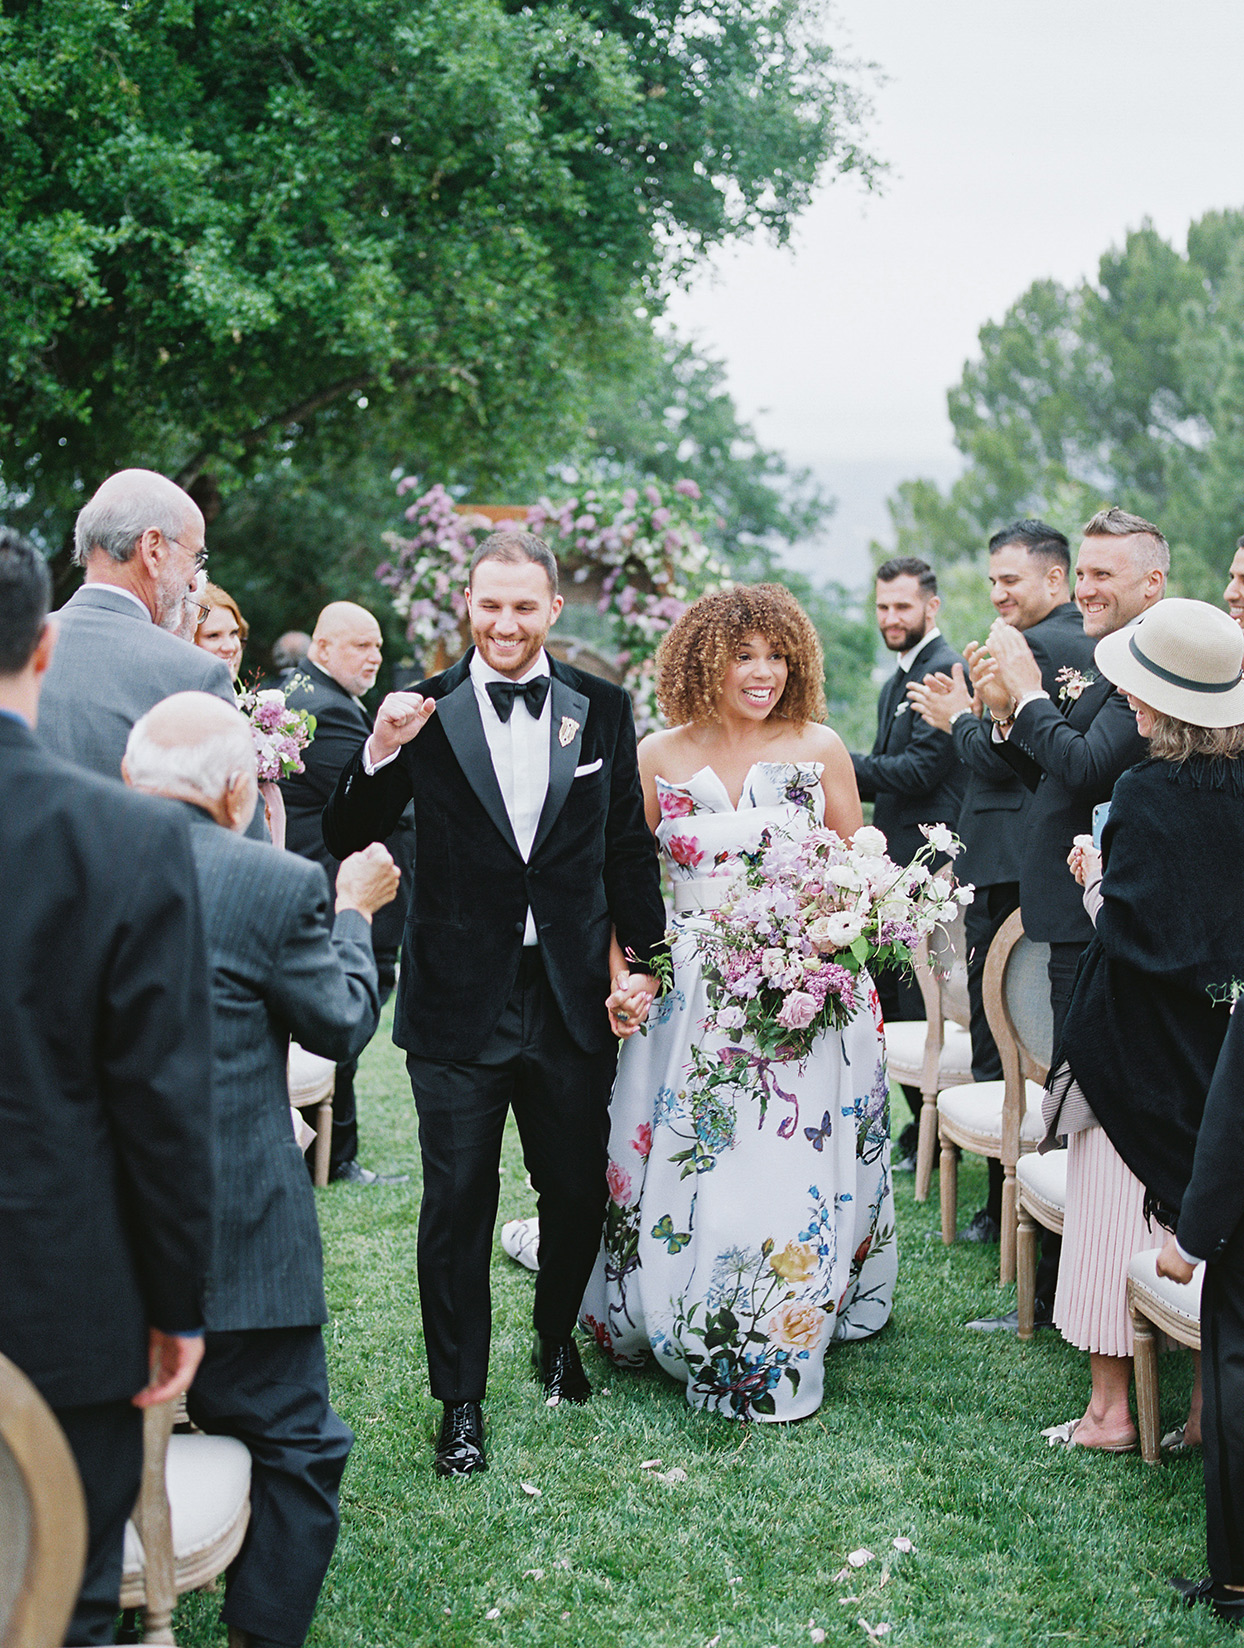 raina salih wedding couple ceremony recessional